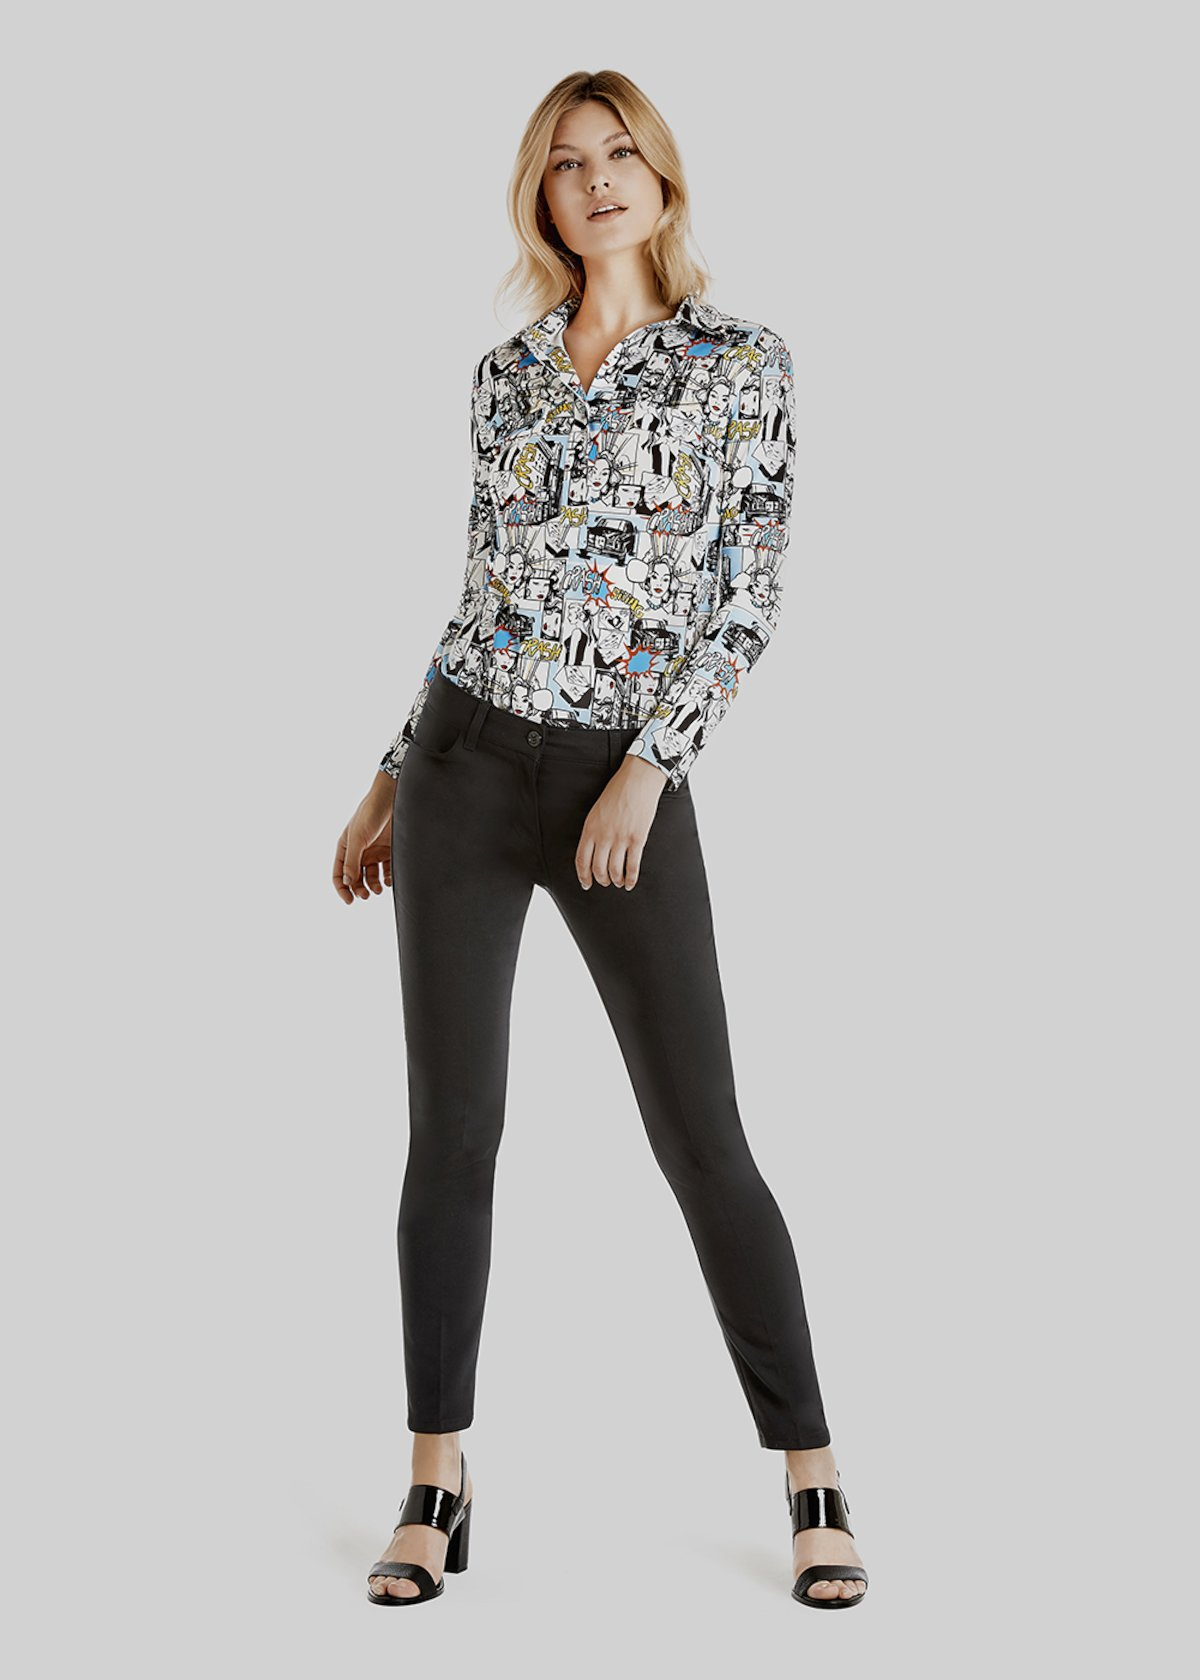 Soledad long sleeve jersey t-shirt - Black White Fantasia